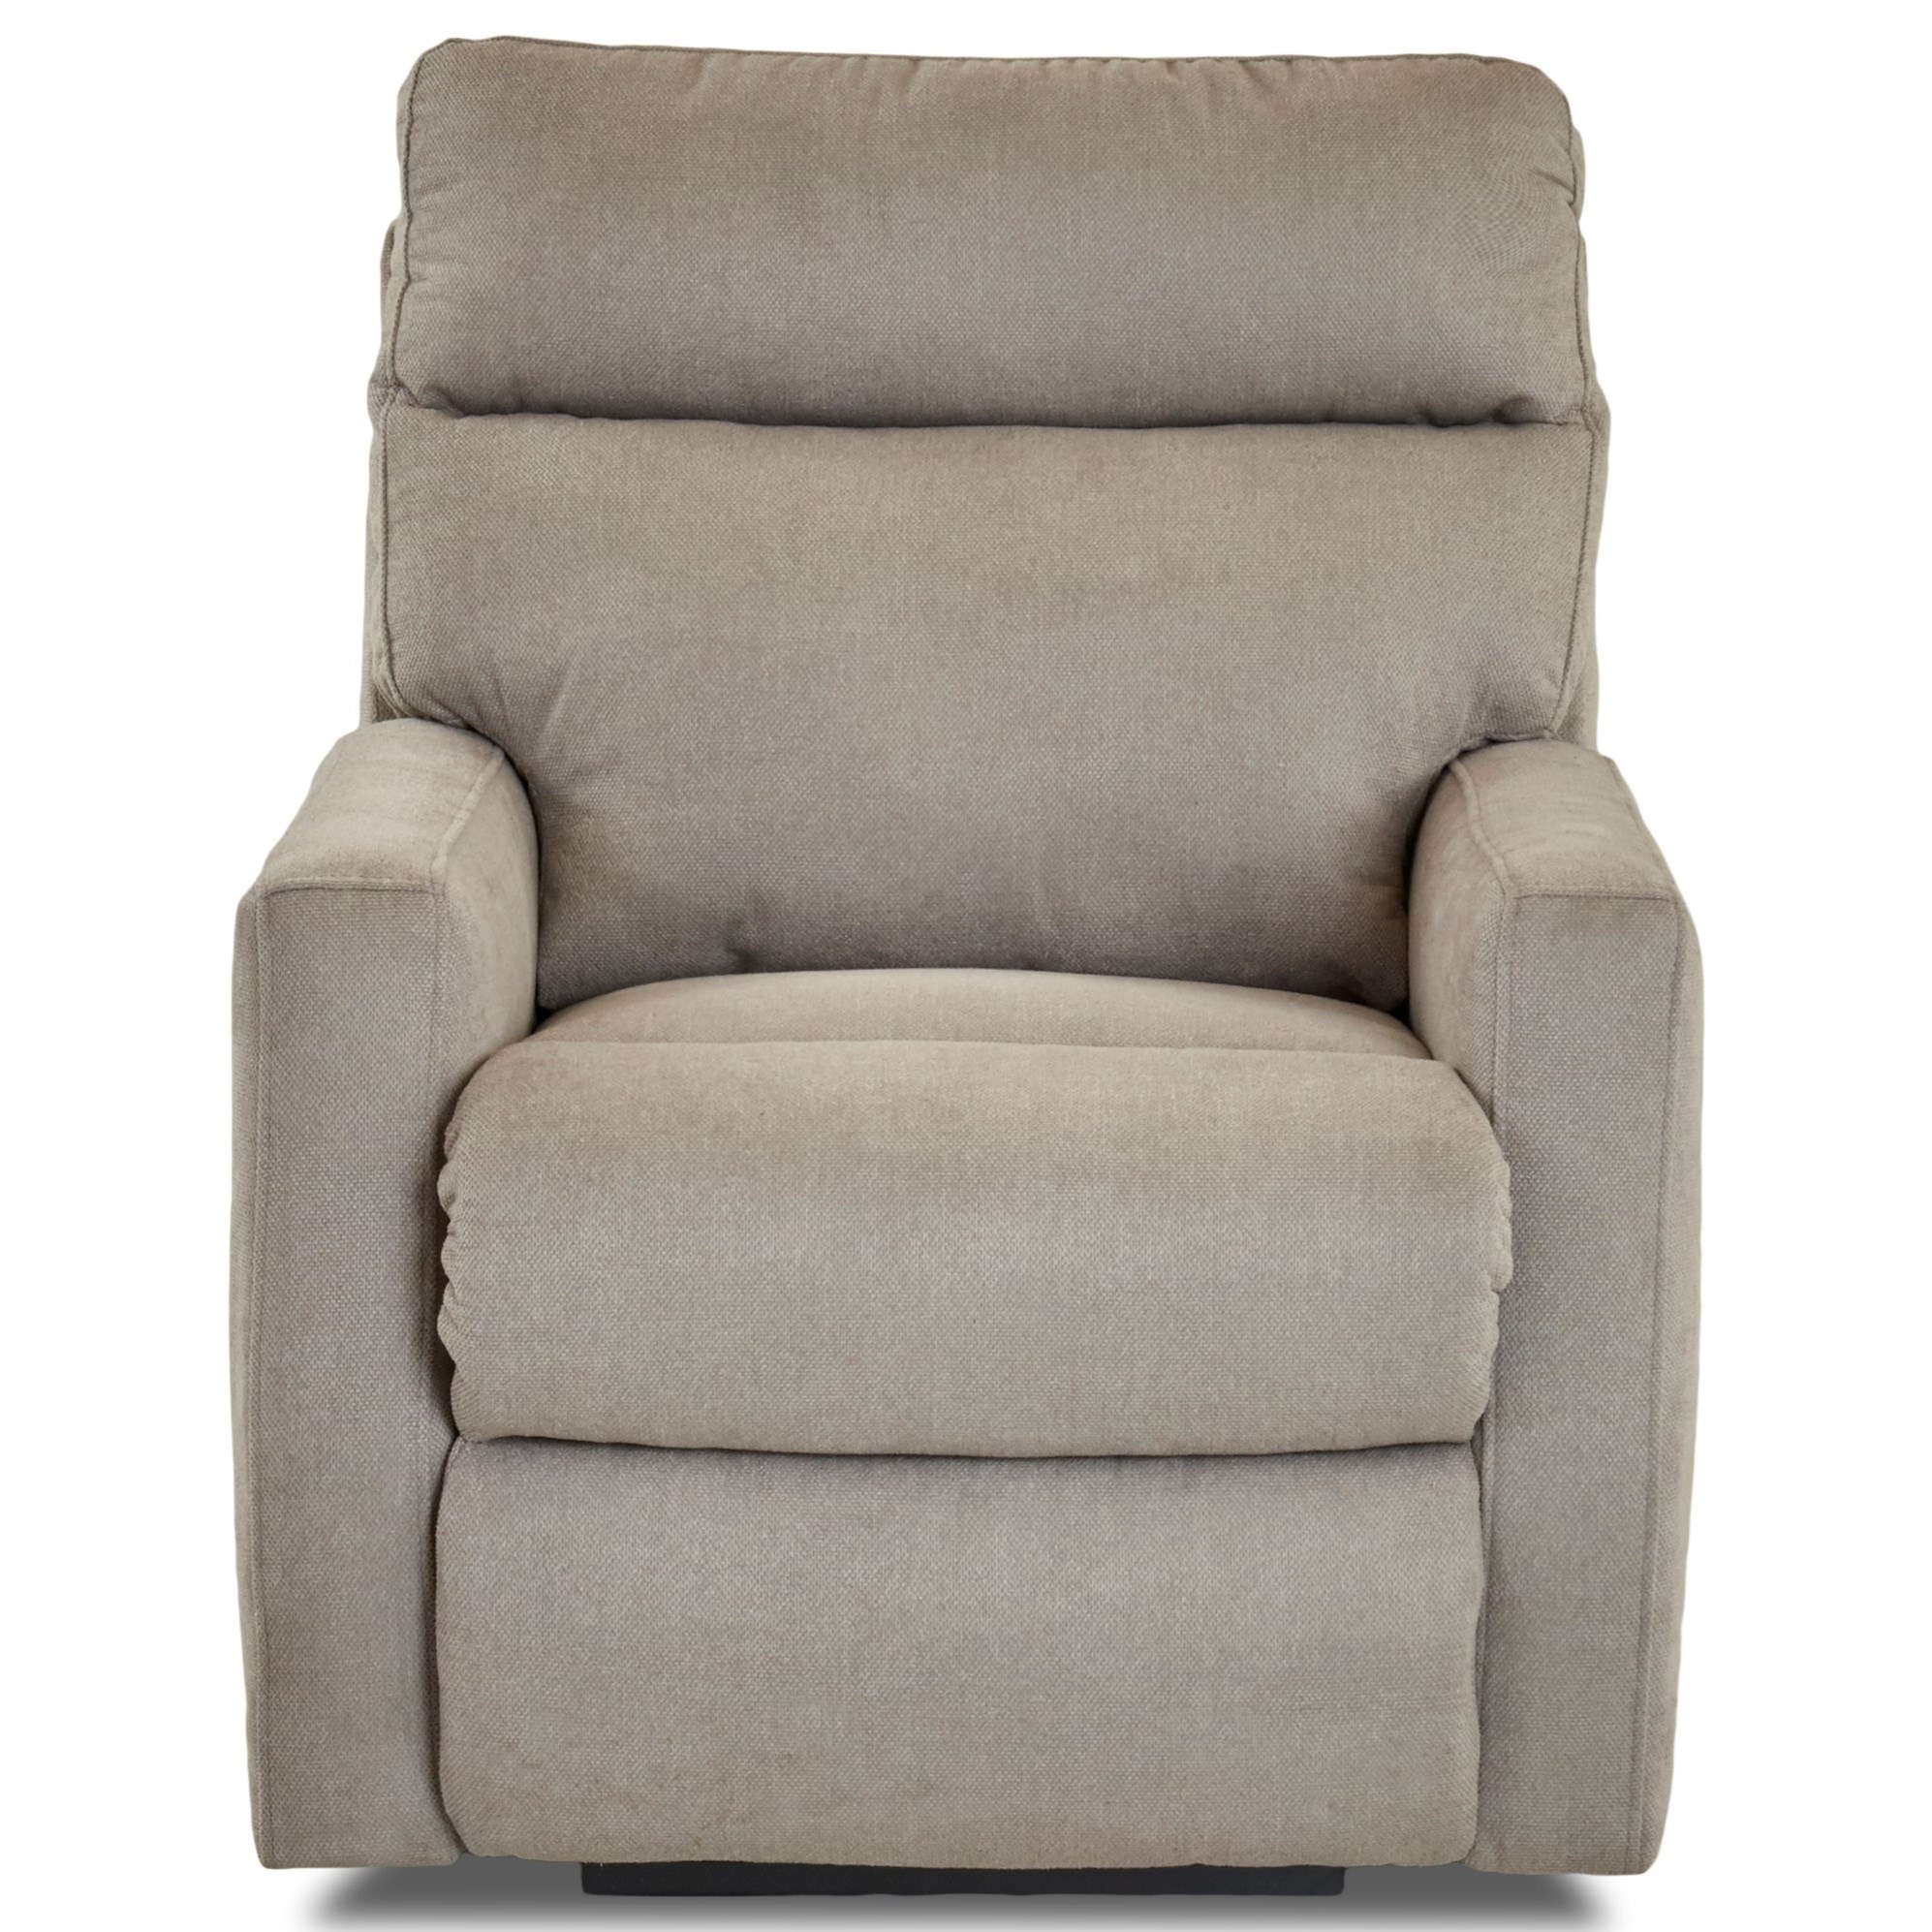 Daphne Swivel Gliding Reclining Chair by Klaussner at Johnny Janosik